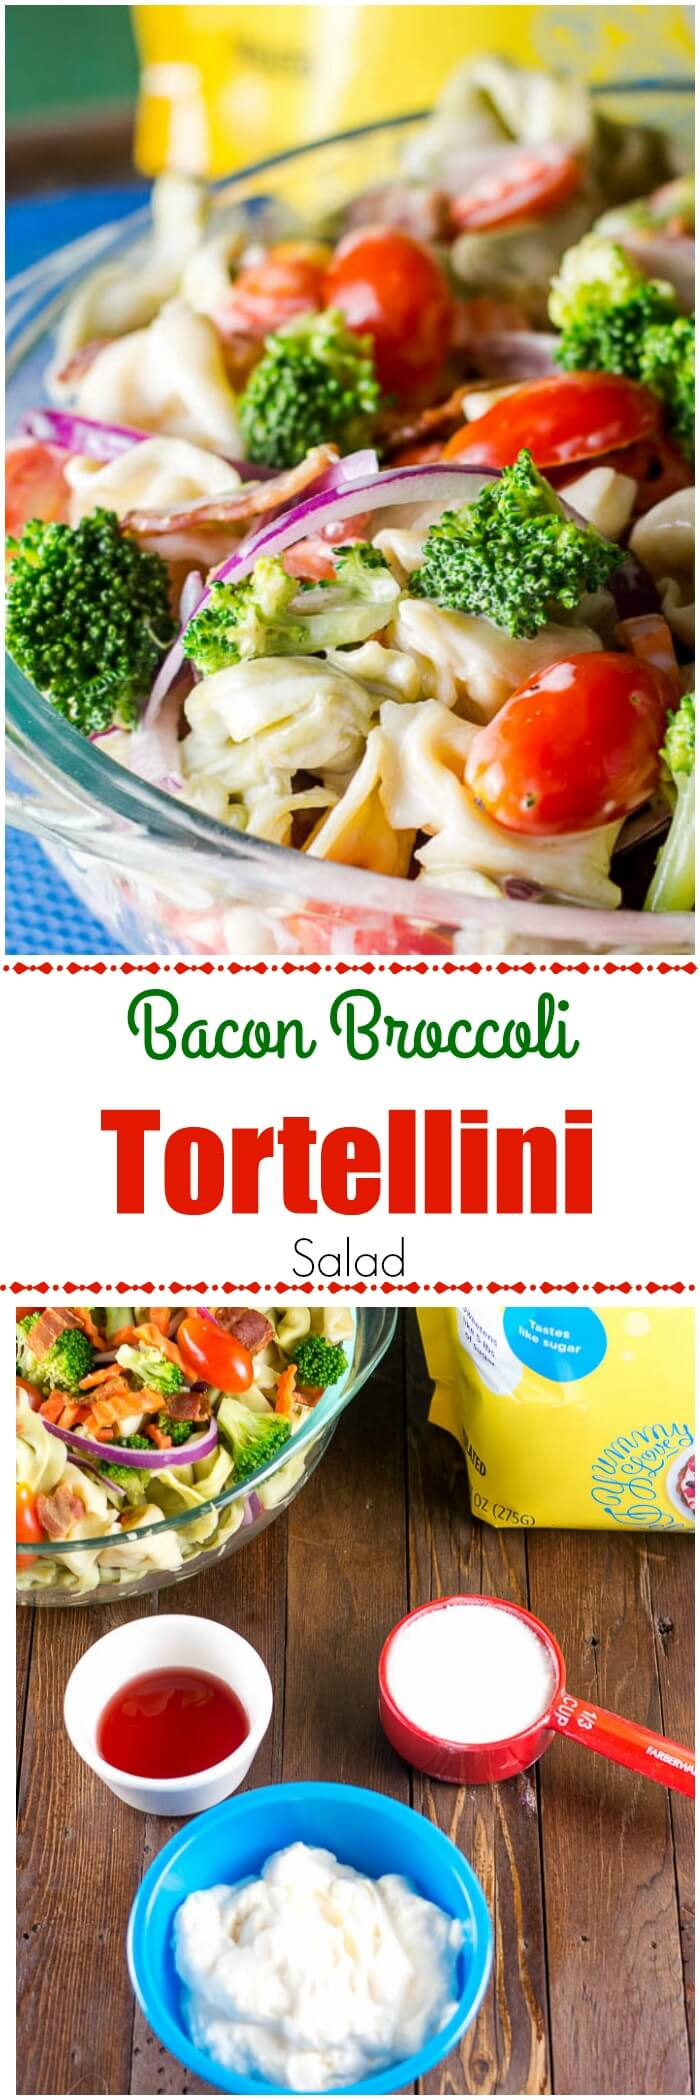 This Bacon Broccoli Tortellini Salad is a favorite pasta salad for outdoor BBQs, picnics, or tailgating parties, and has less sugar than most pasta salads!  #TortelliniSalad #PastaSalad